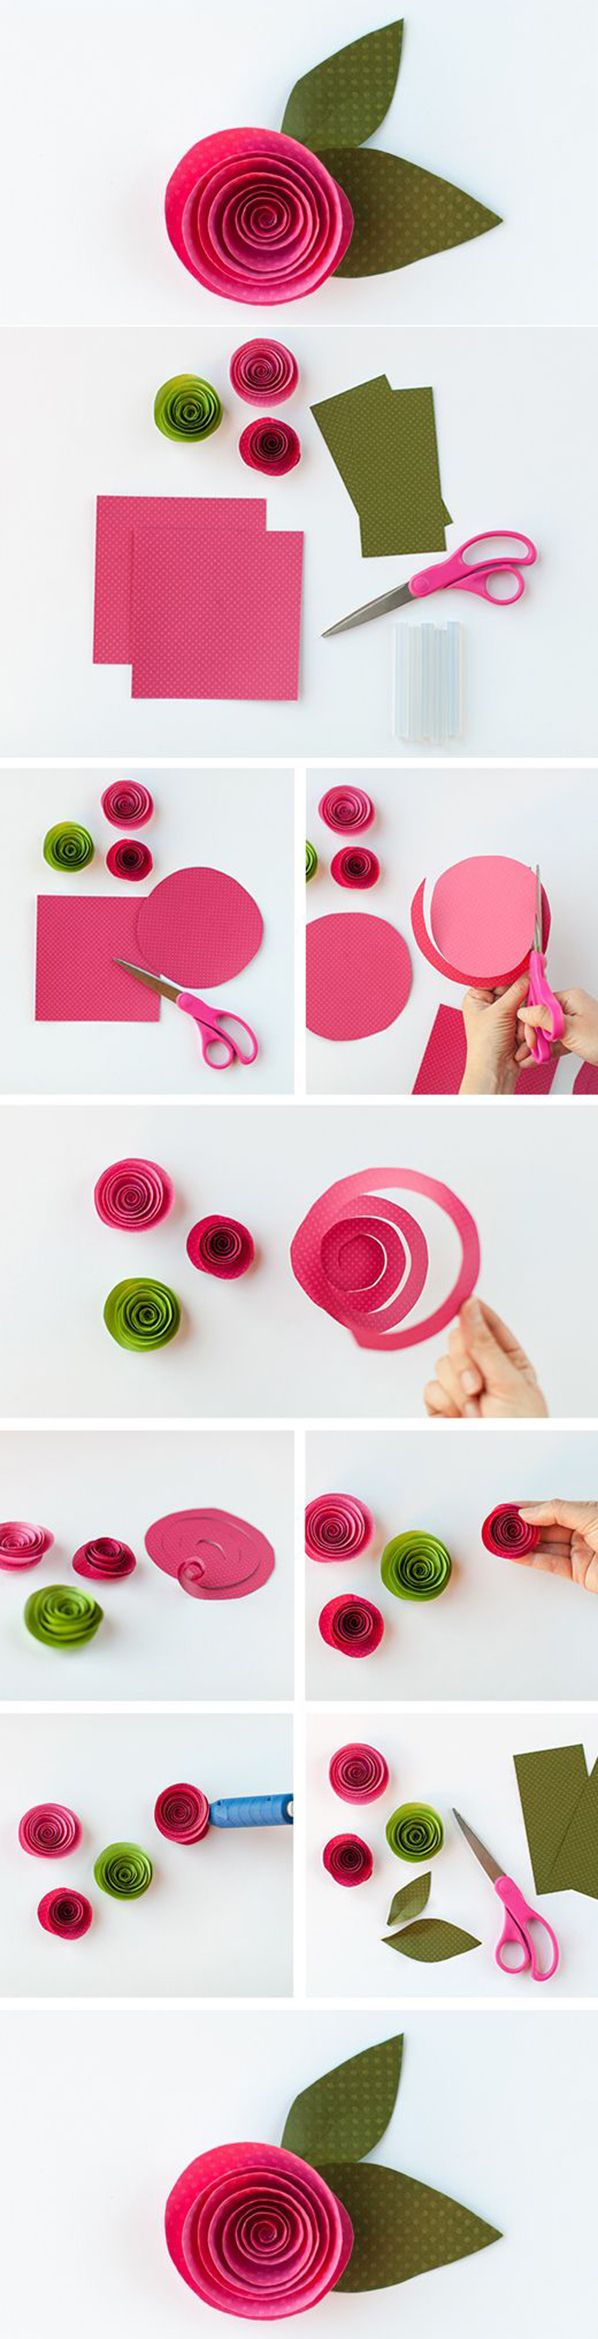 Easy, Cute Paper Flower Diy Maybe Make A String Of Them To Hang On